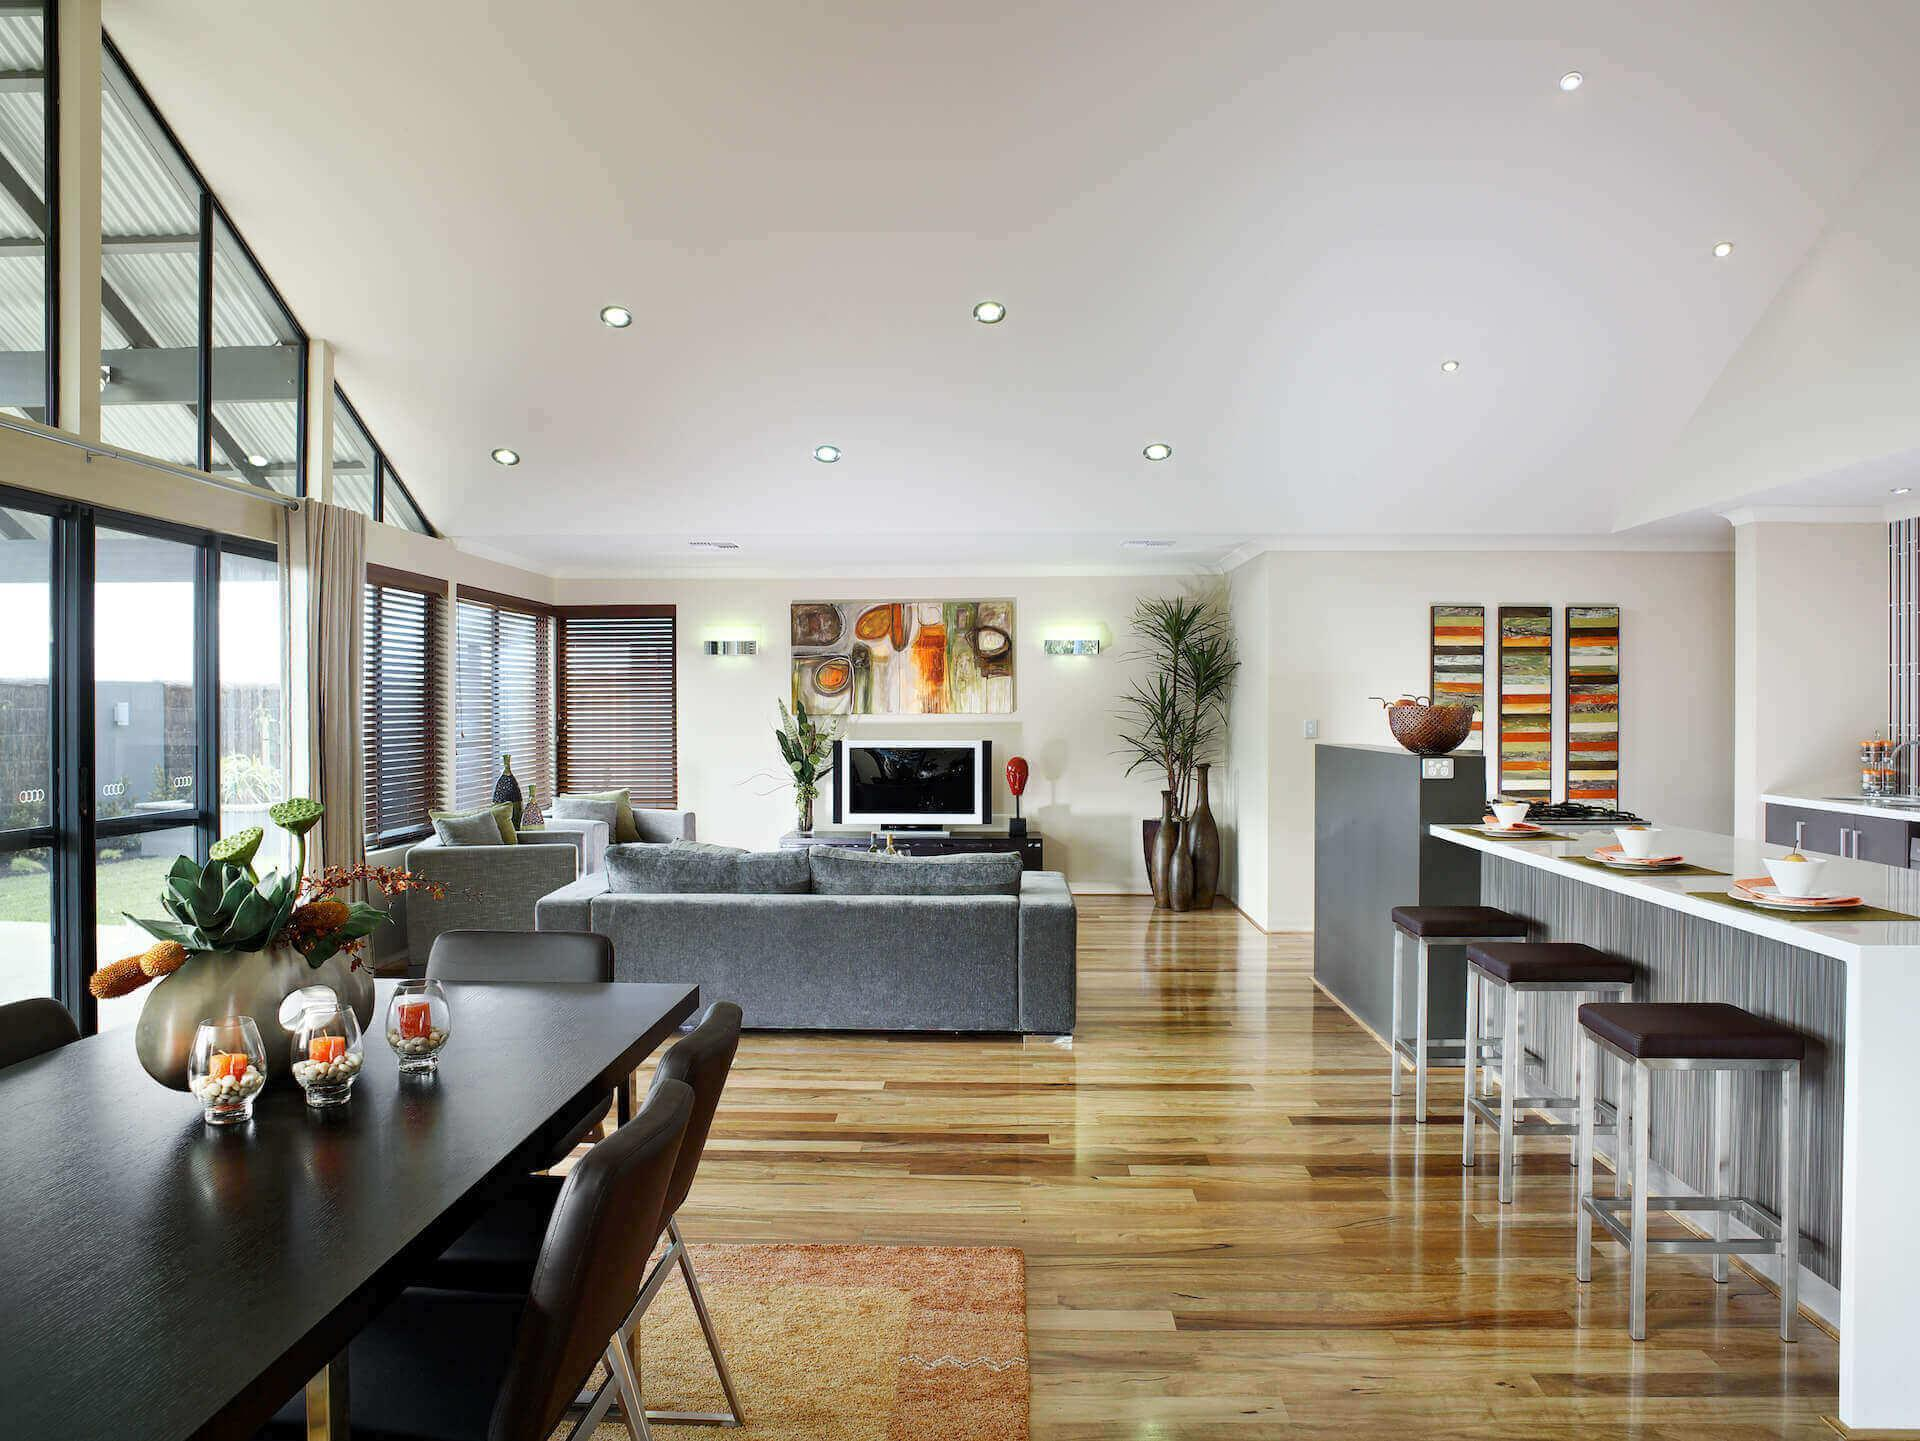 Rural Building Co - The Coastal View - open-plan dining room and lounge